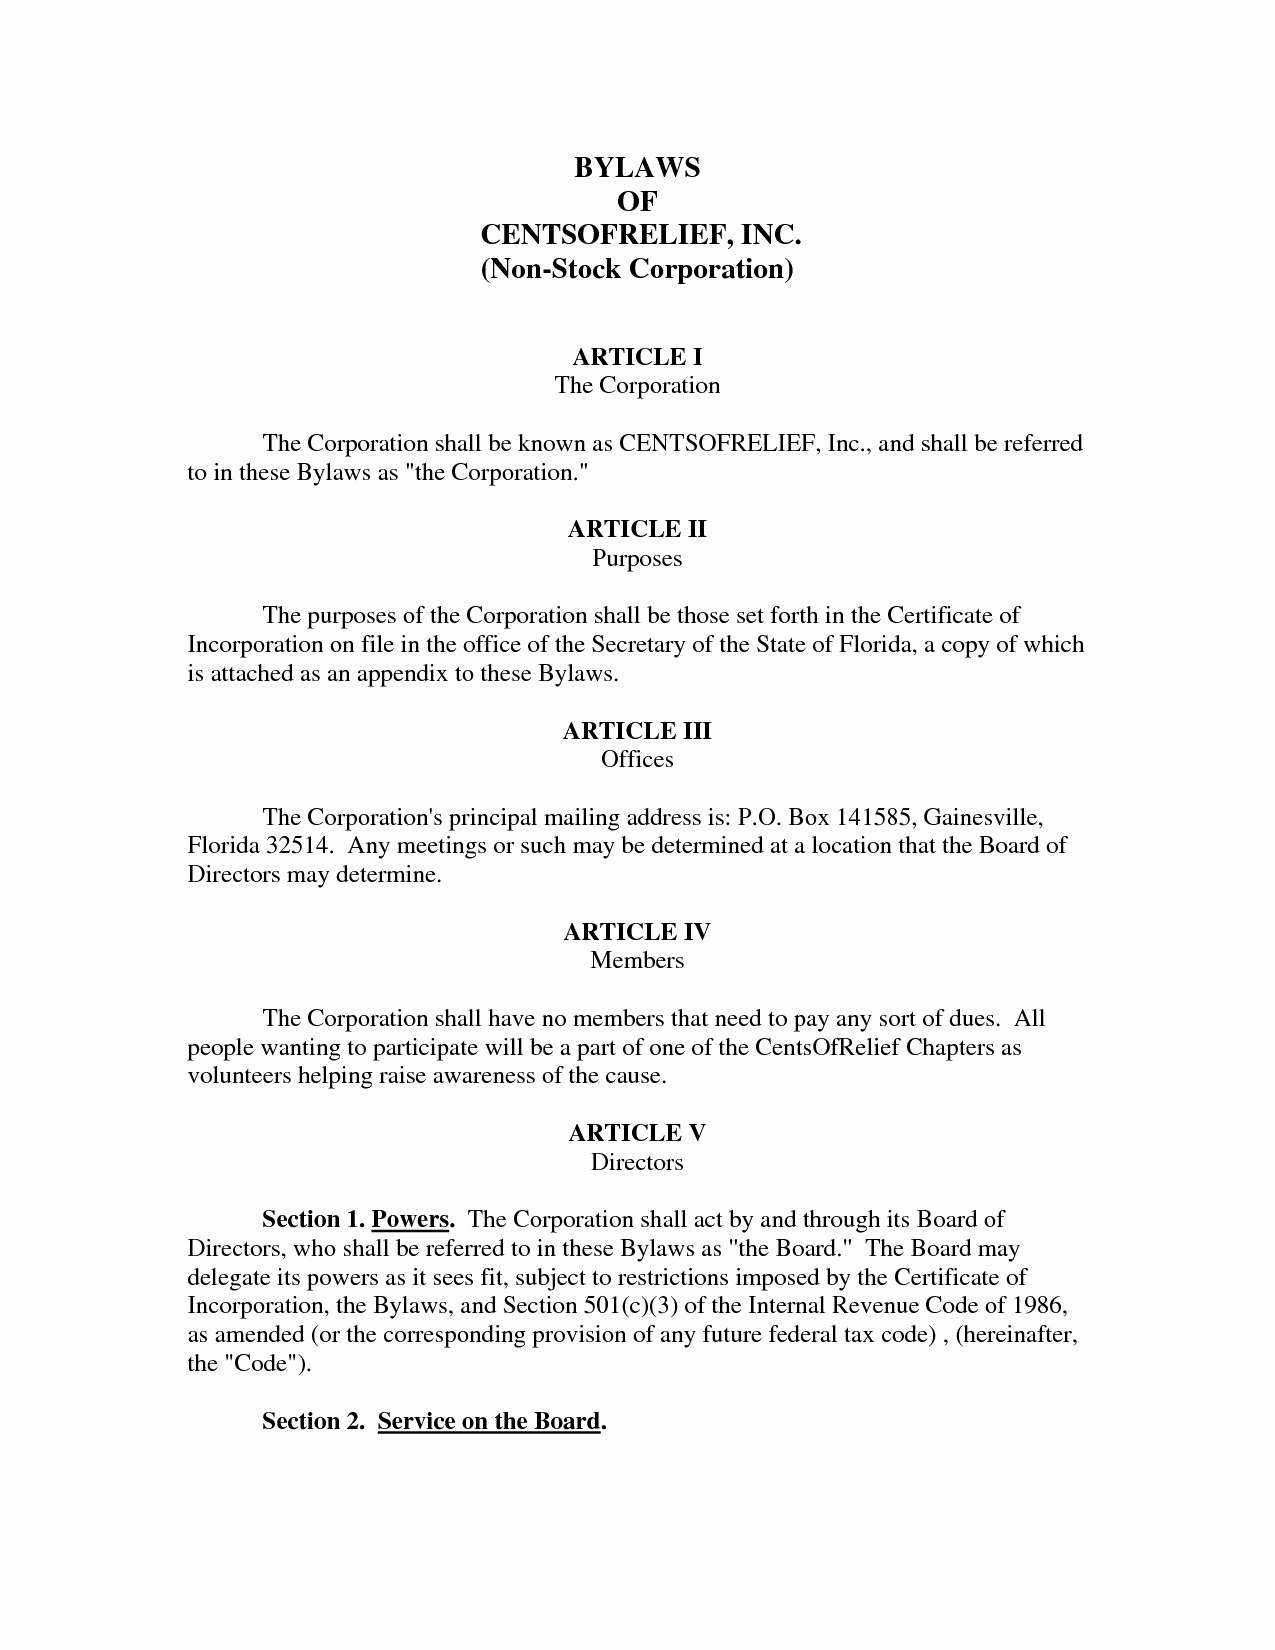 Corporate bylaws Template Word Elegant Best S Of bylaws for Corporation Template Divorce